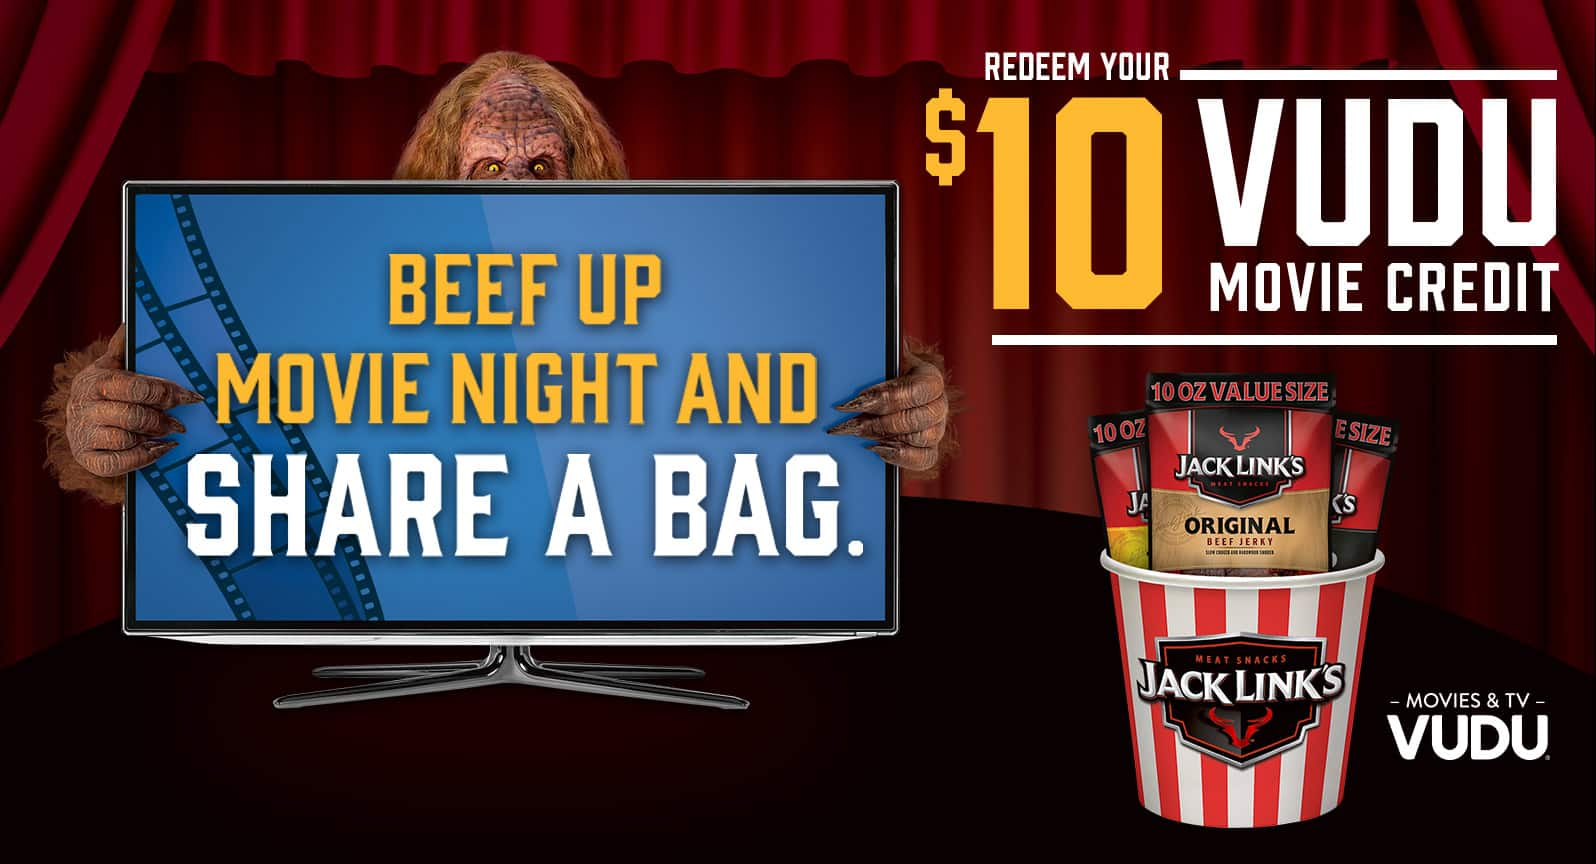 Buy 10 oz Jack Links at Walmart, get $10 VUDU credit